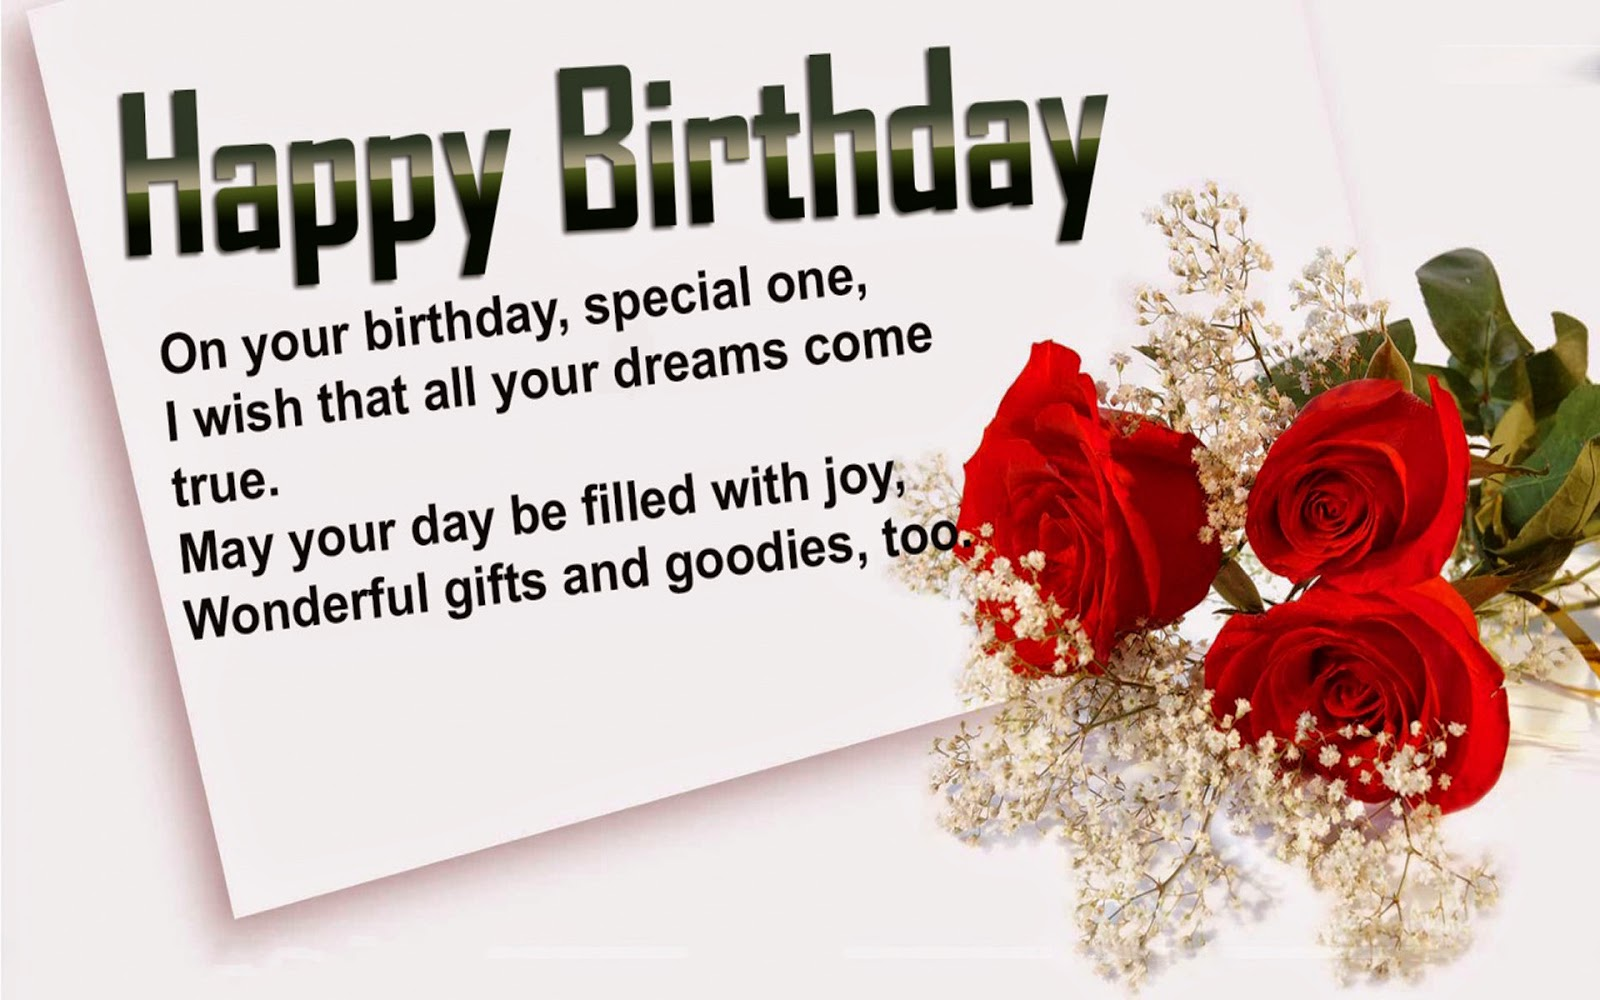 Birthday quotes for husband and wife in english poetry likers on your birthday special one i wish that all your dreams come true may your day be filled with joy wonderful gifts and goodies too m4hsunfo